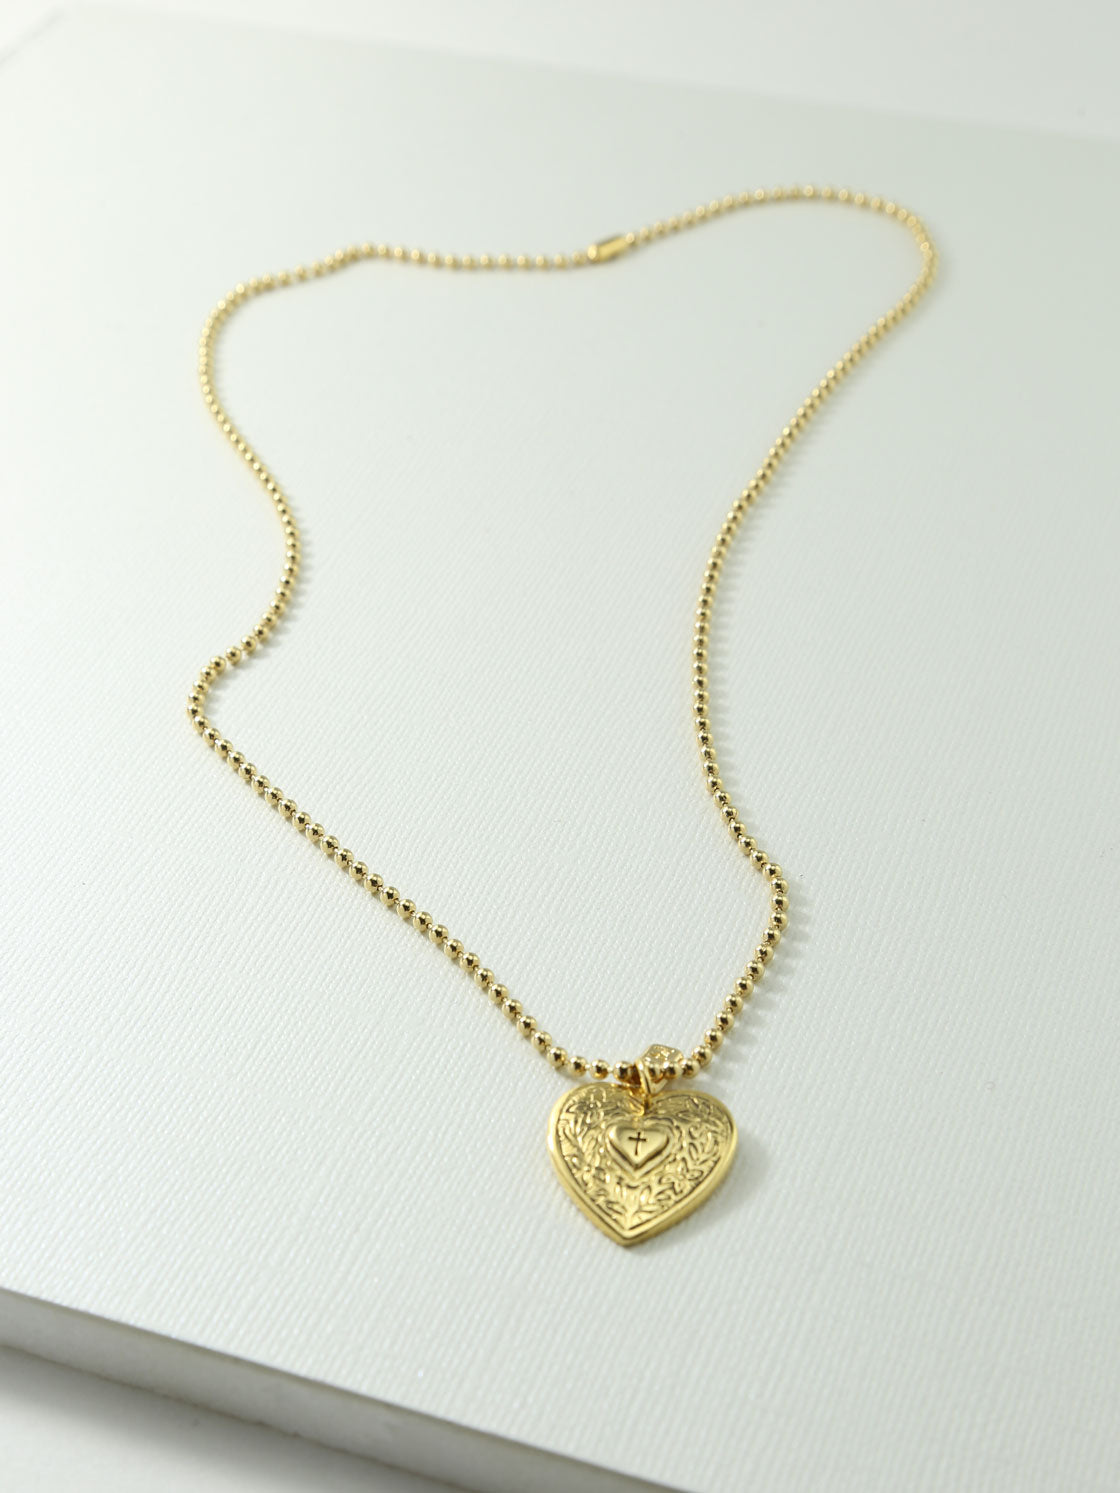 jewellery necklace alcazar necklaces size heart product os